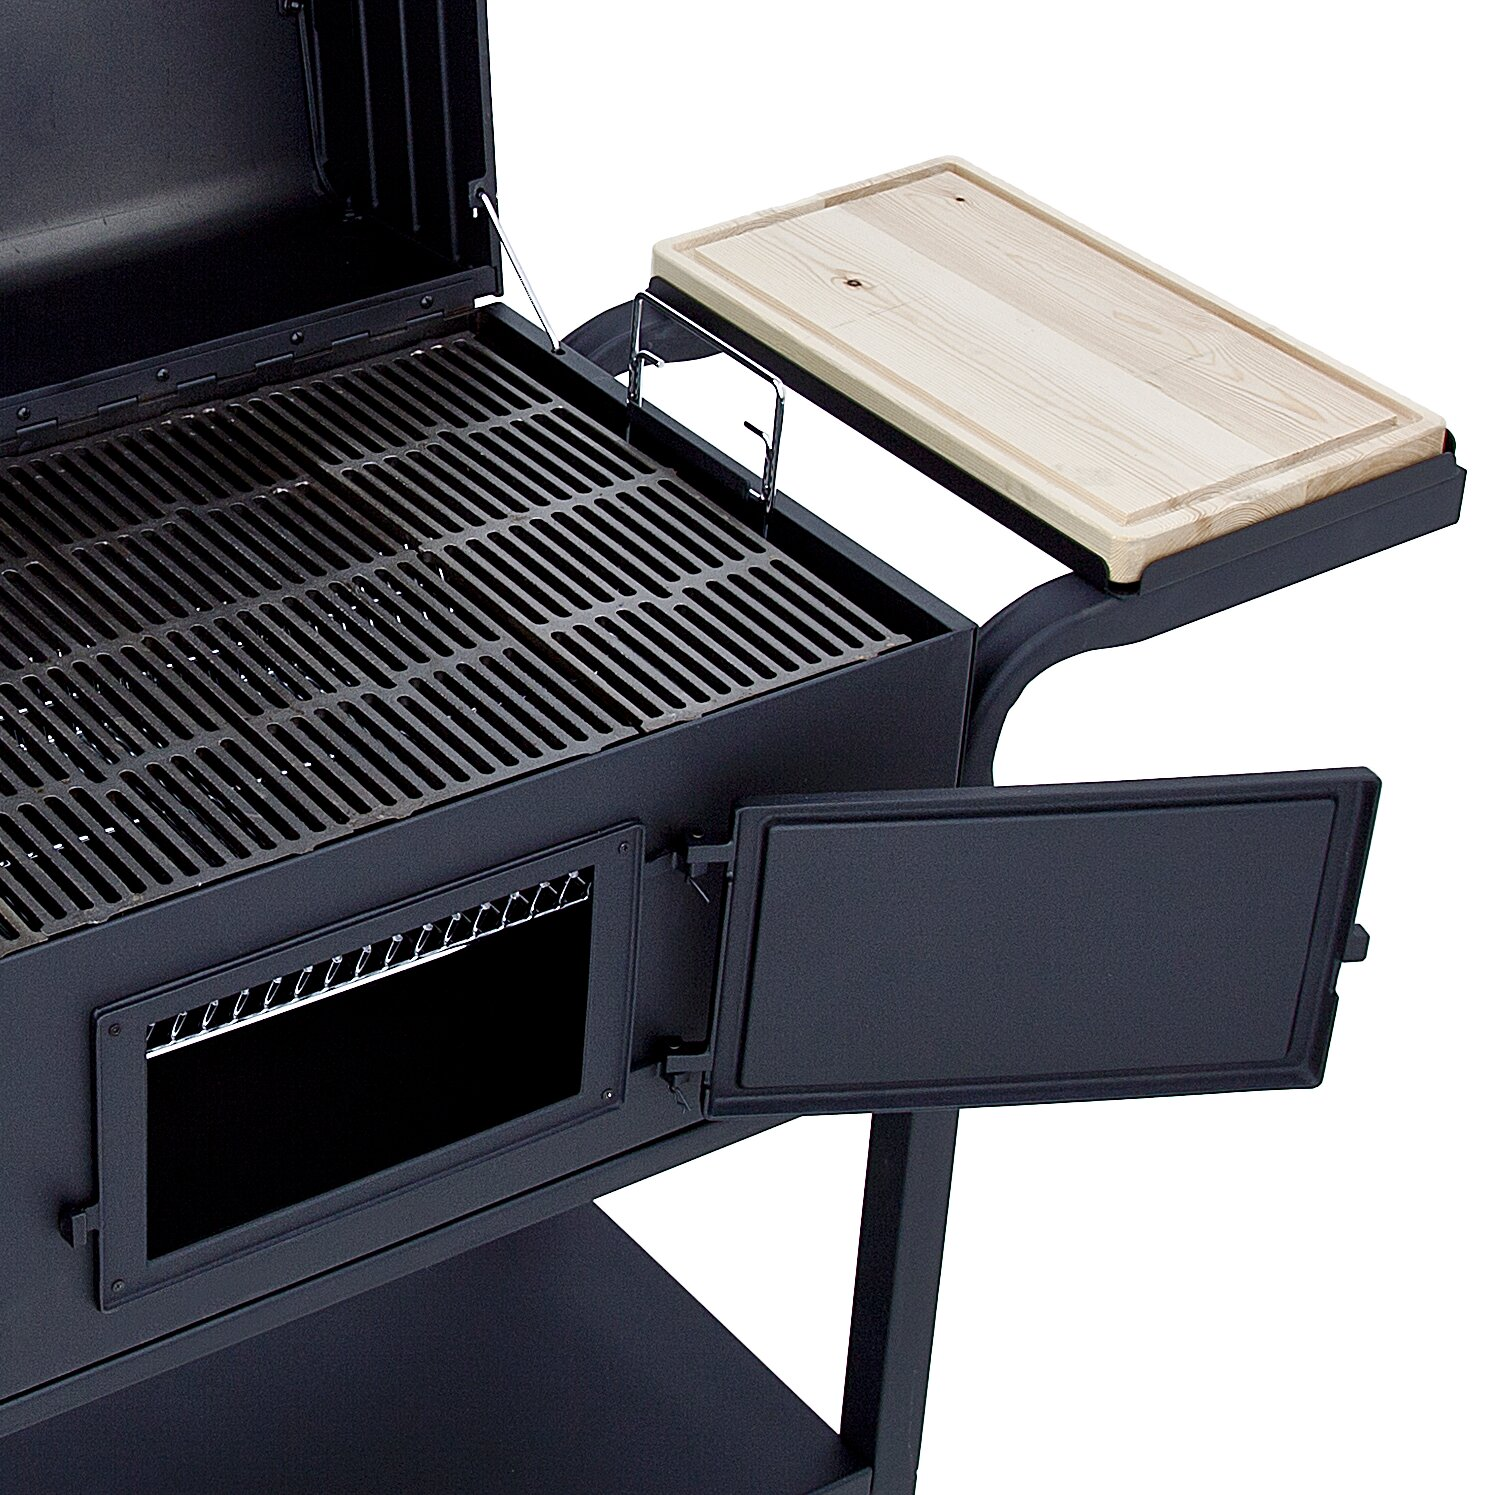 charbroil classic charcoal grill with side shelves reviews. Black Bedroom Furniture Sets. Home Design Ideas